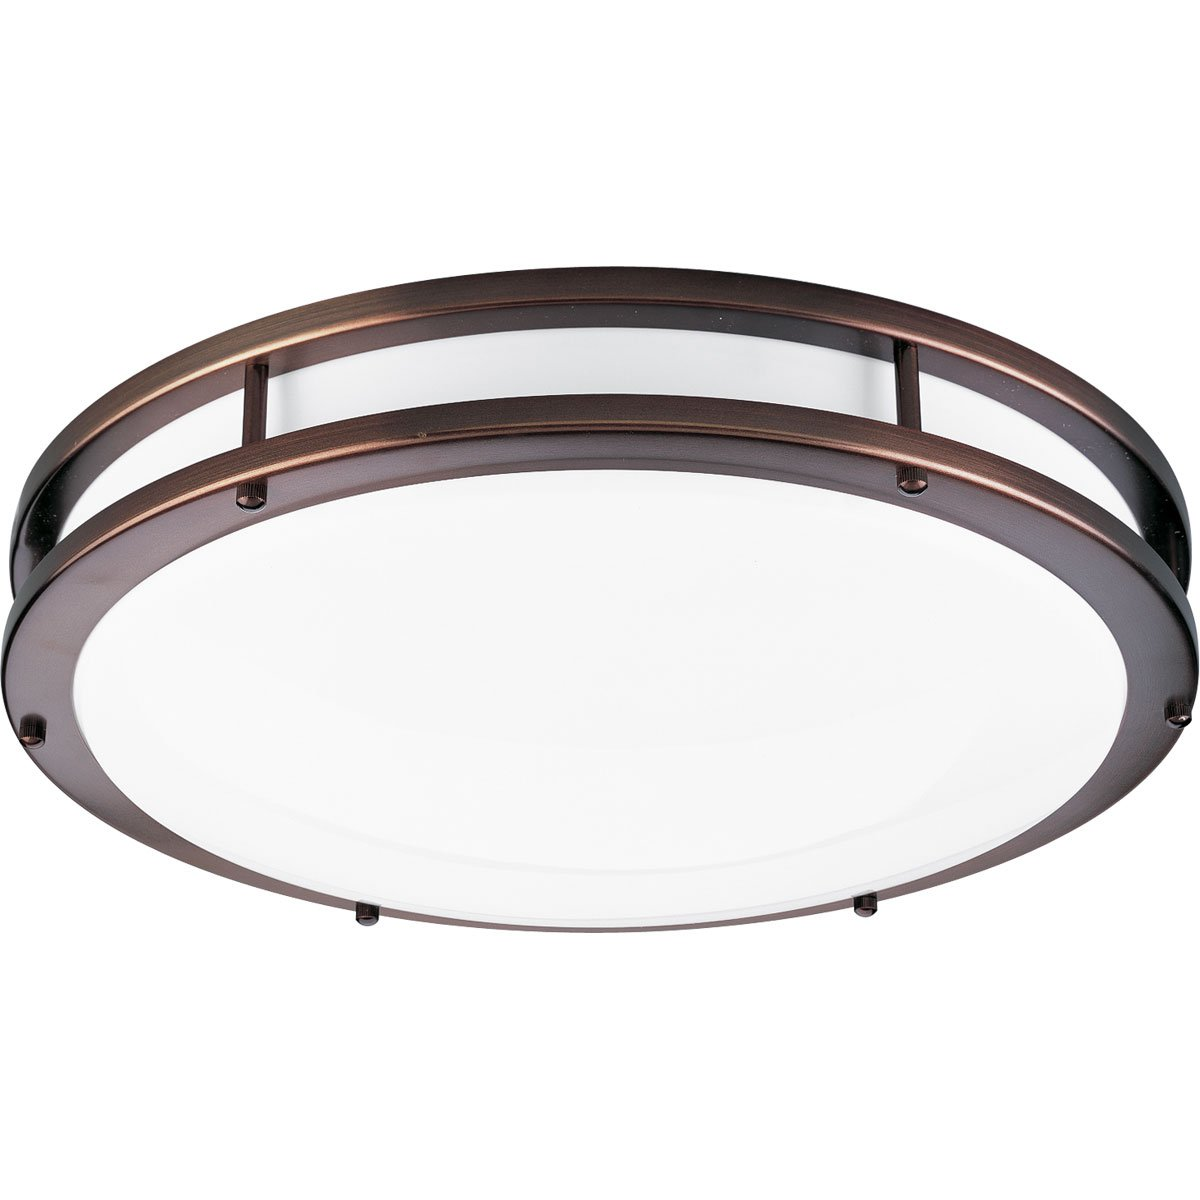 Progress lighting p7250 174ebwb round fluorescent with acrylic progress lighting p7250 174ebwb round fluorescent with acrylic shade and metal end caps urban bronze close to ceiling light fixtures amazon arubaitofo Image collections